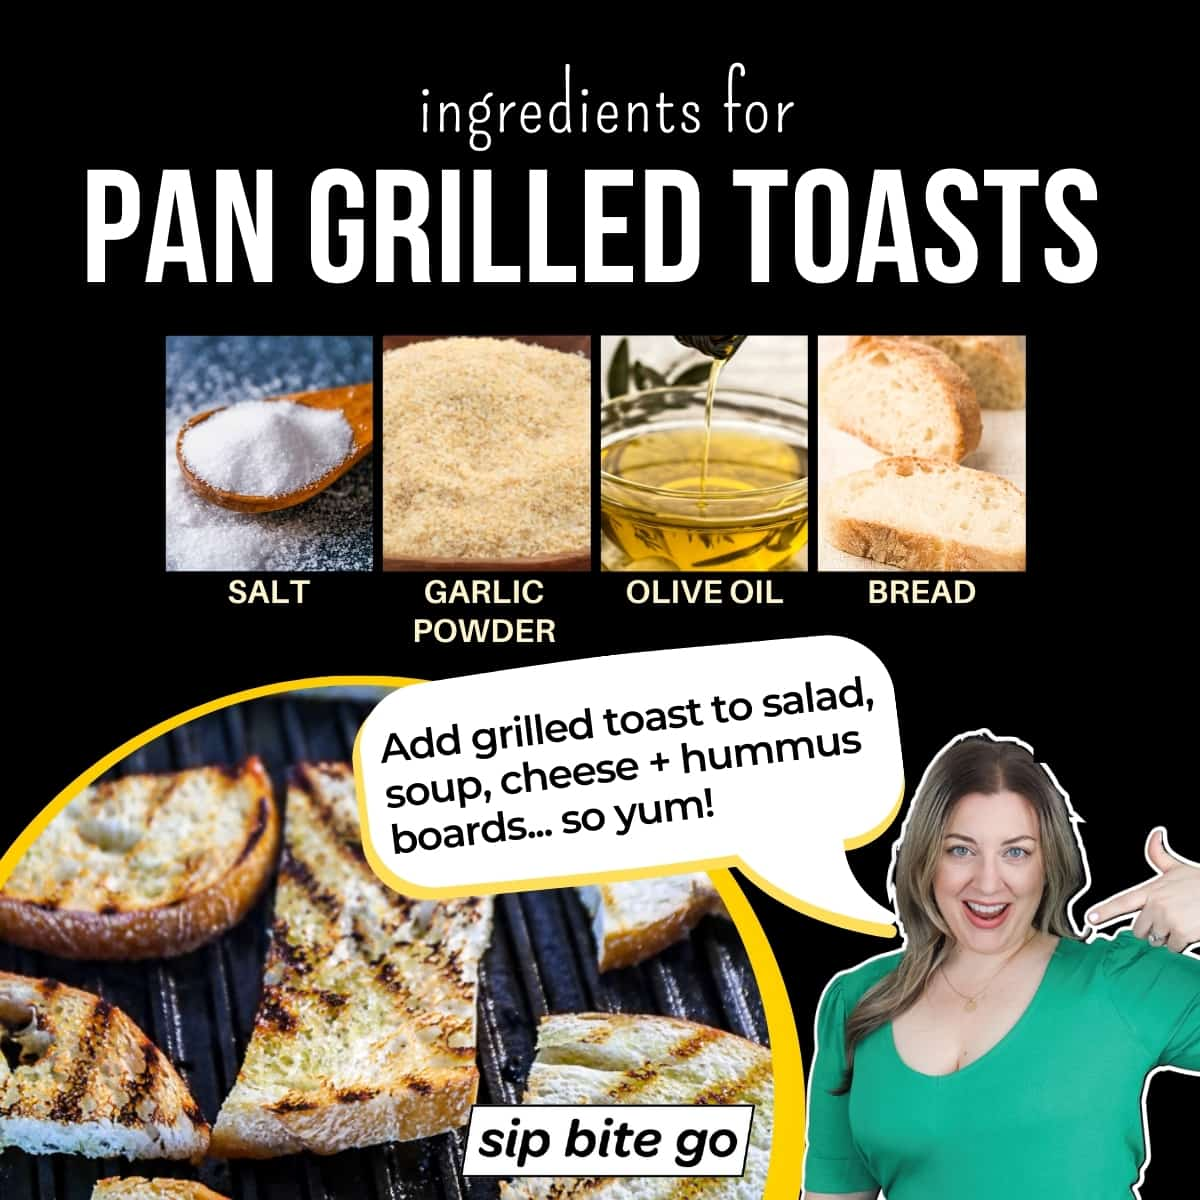 Infographic chart with photos and captions pan grilled toasts ingredients.